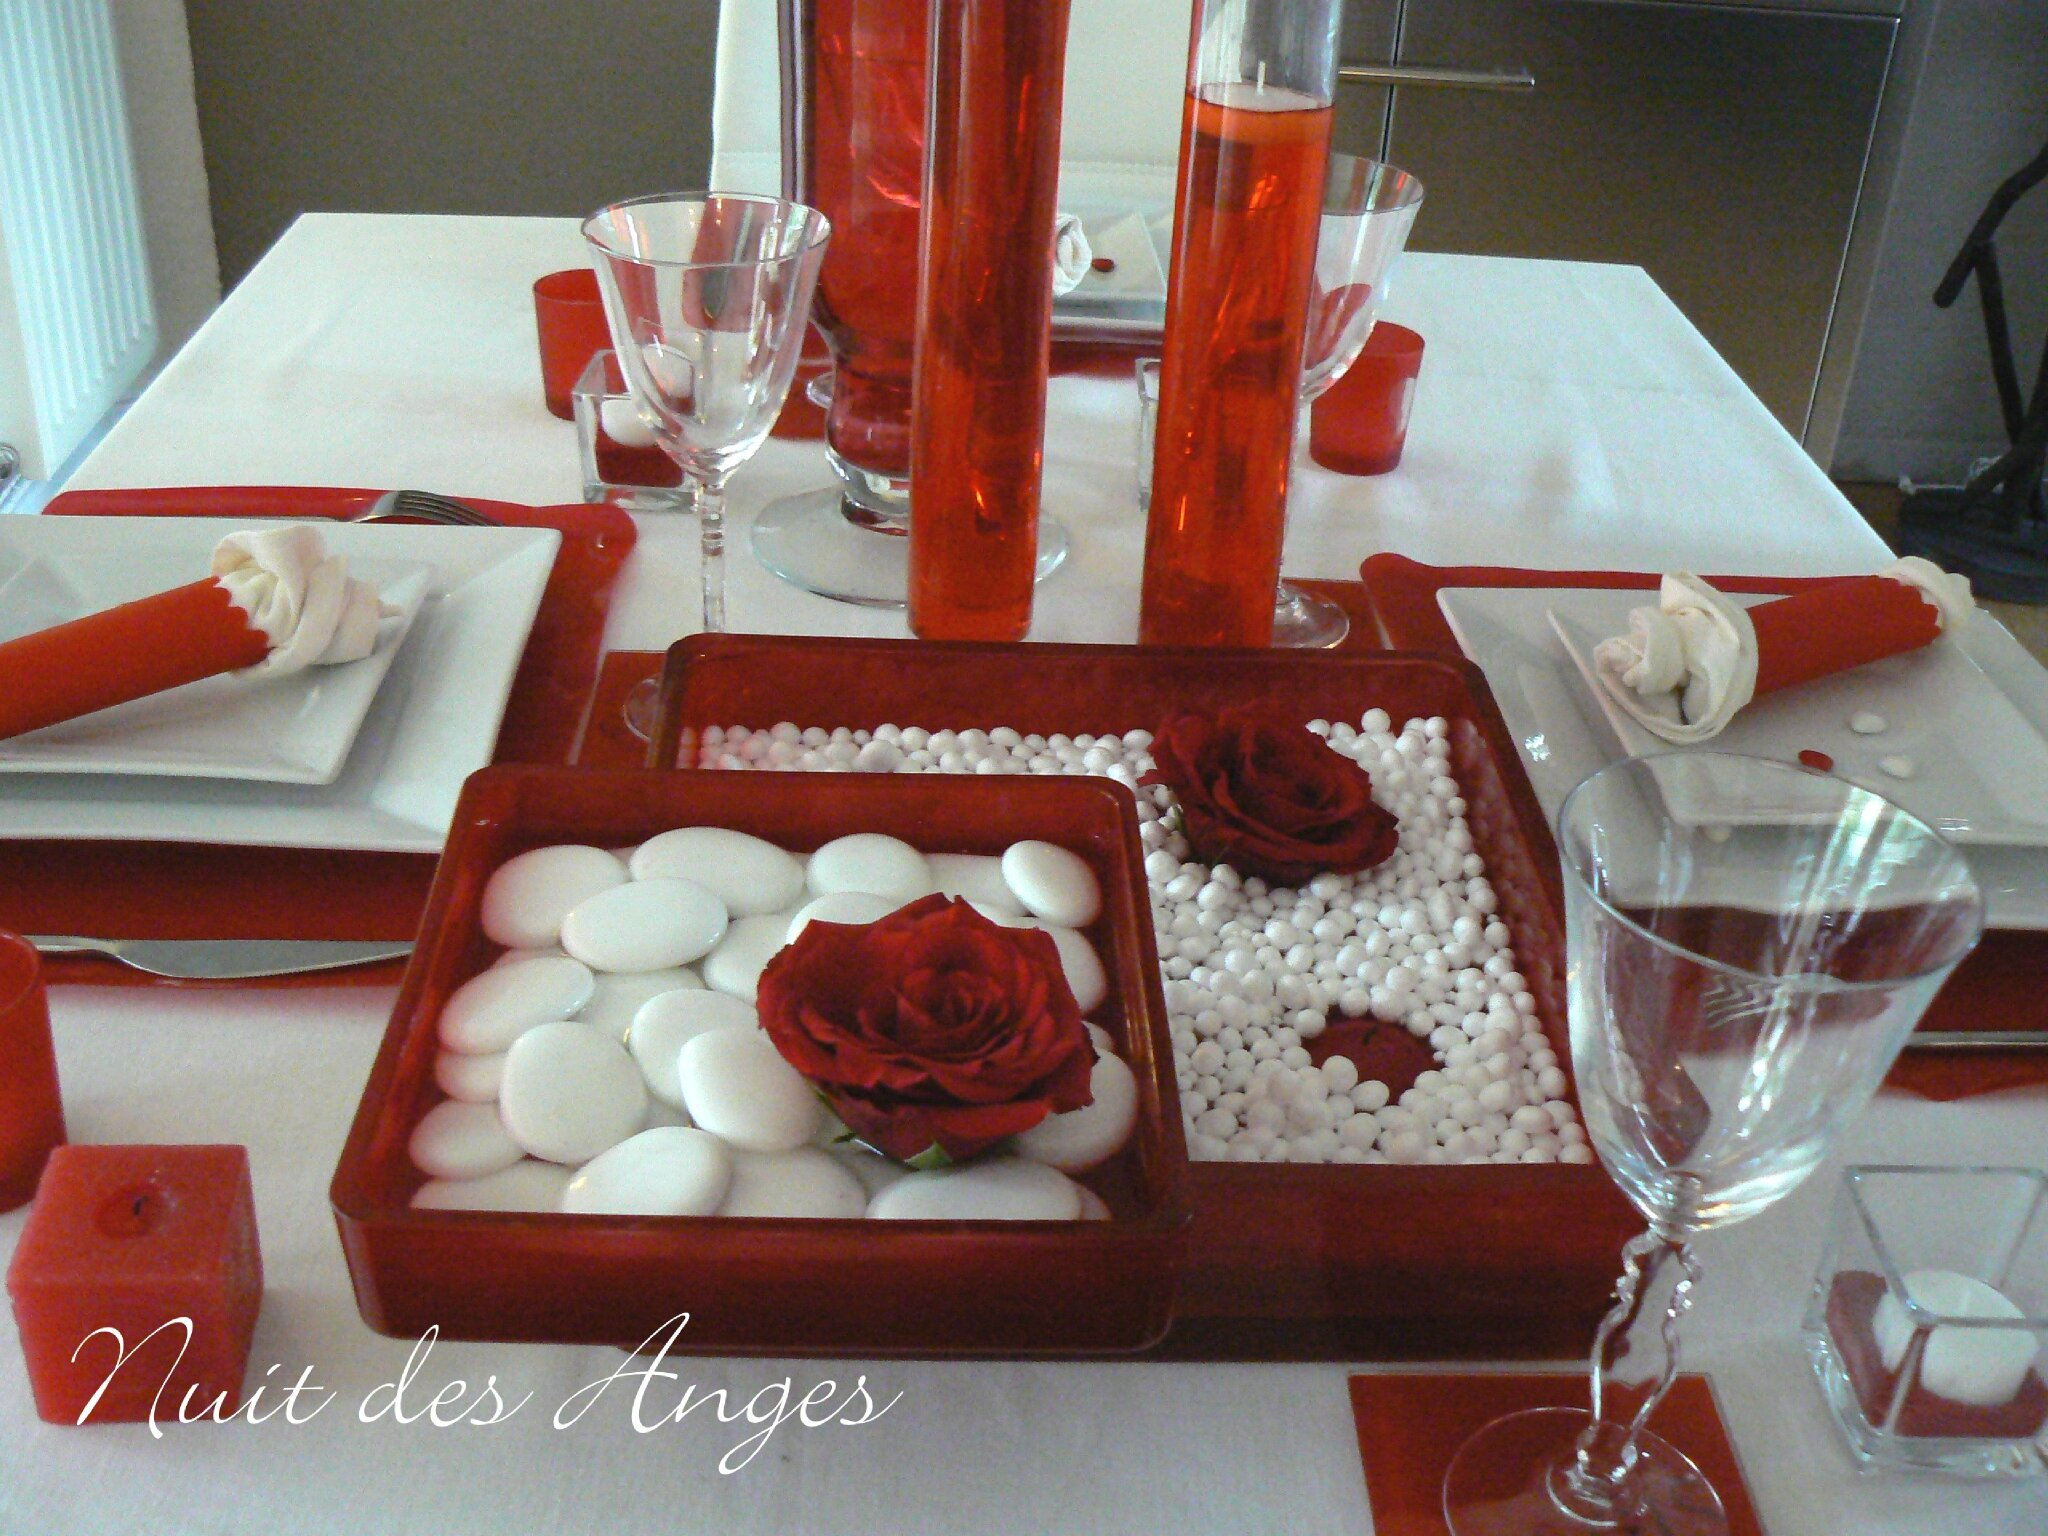 Nuit des anges d coratrice de mariage d coration de table - Decoration de table rouge et blanc ...